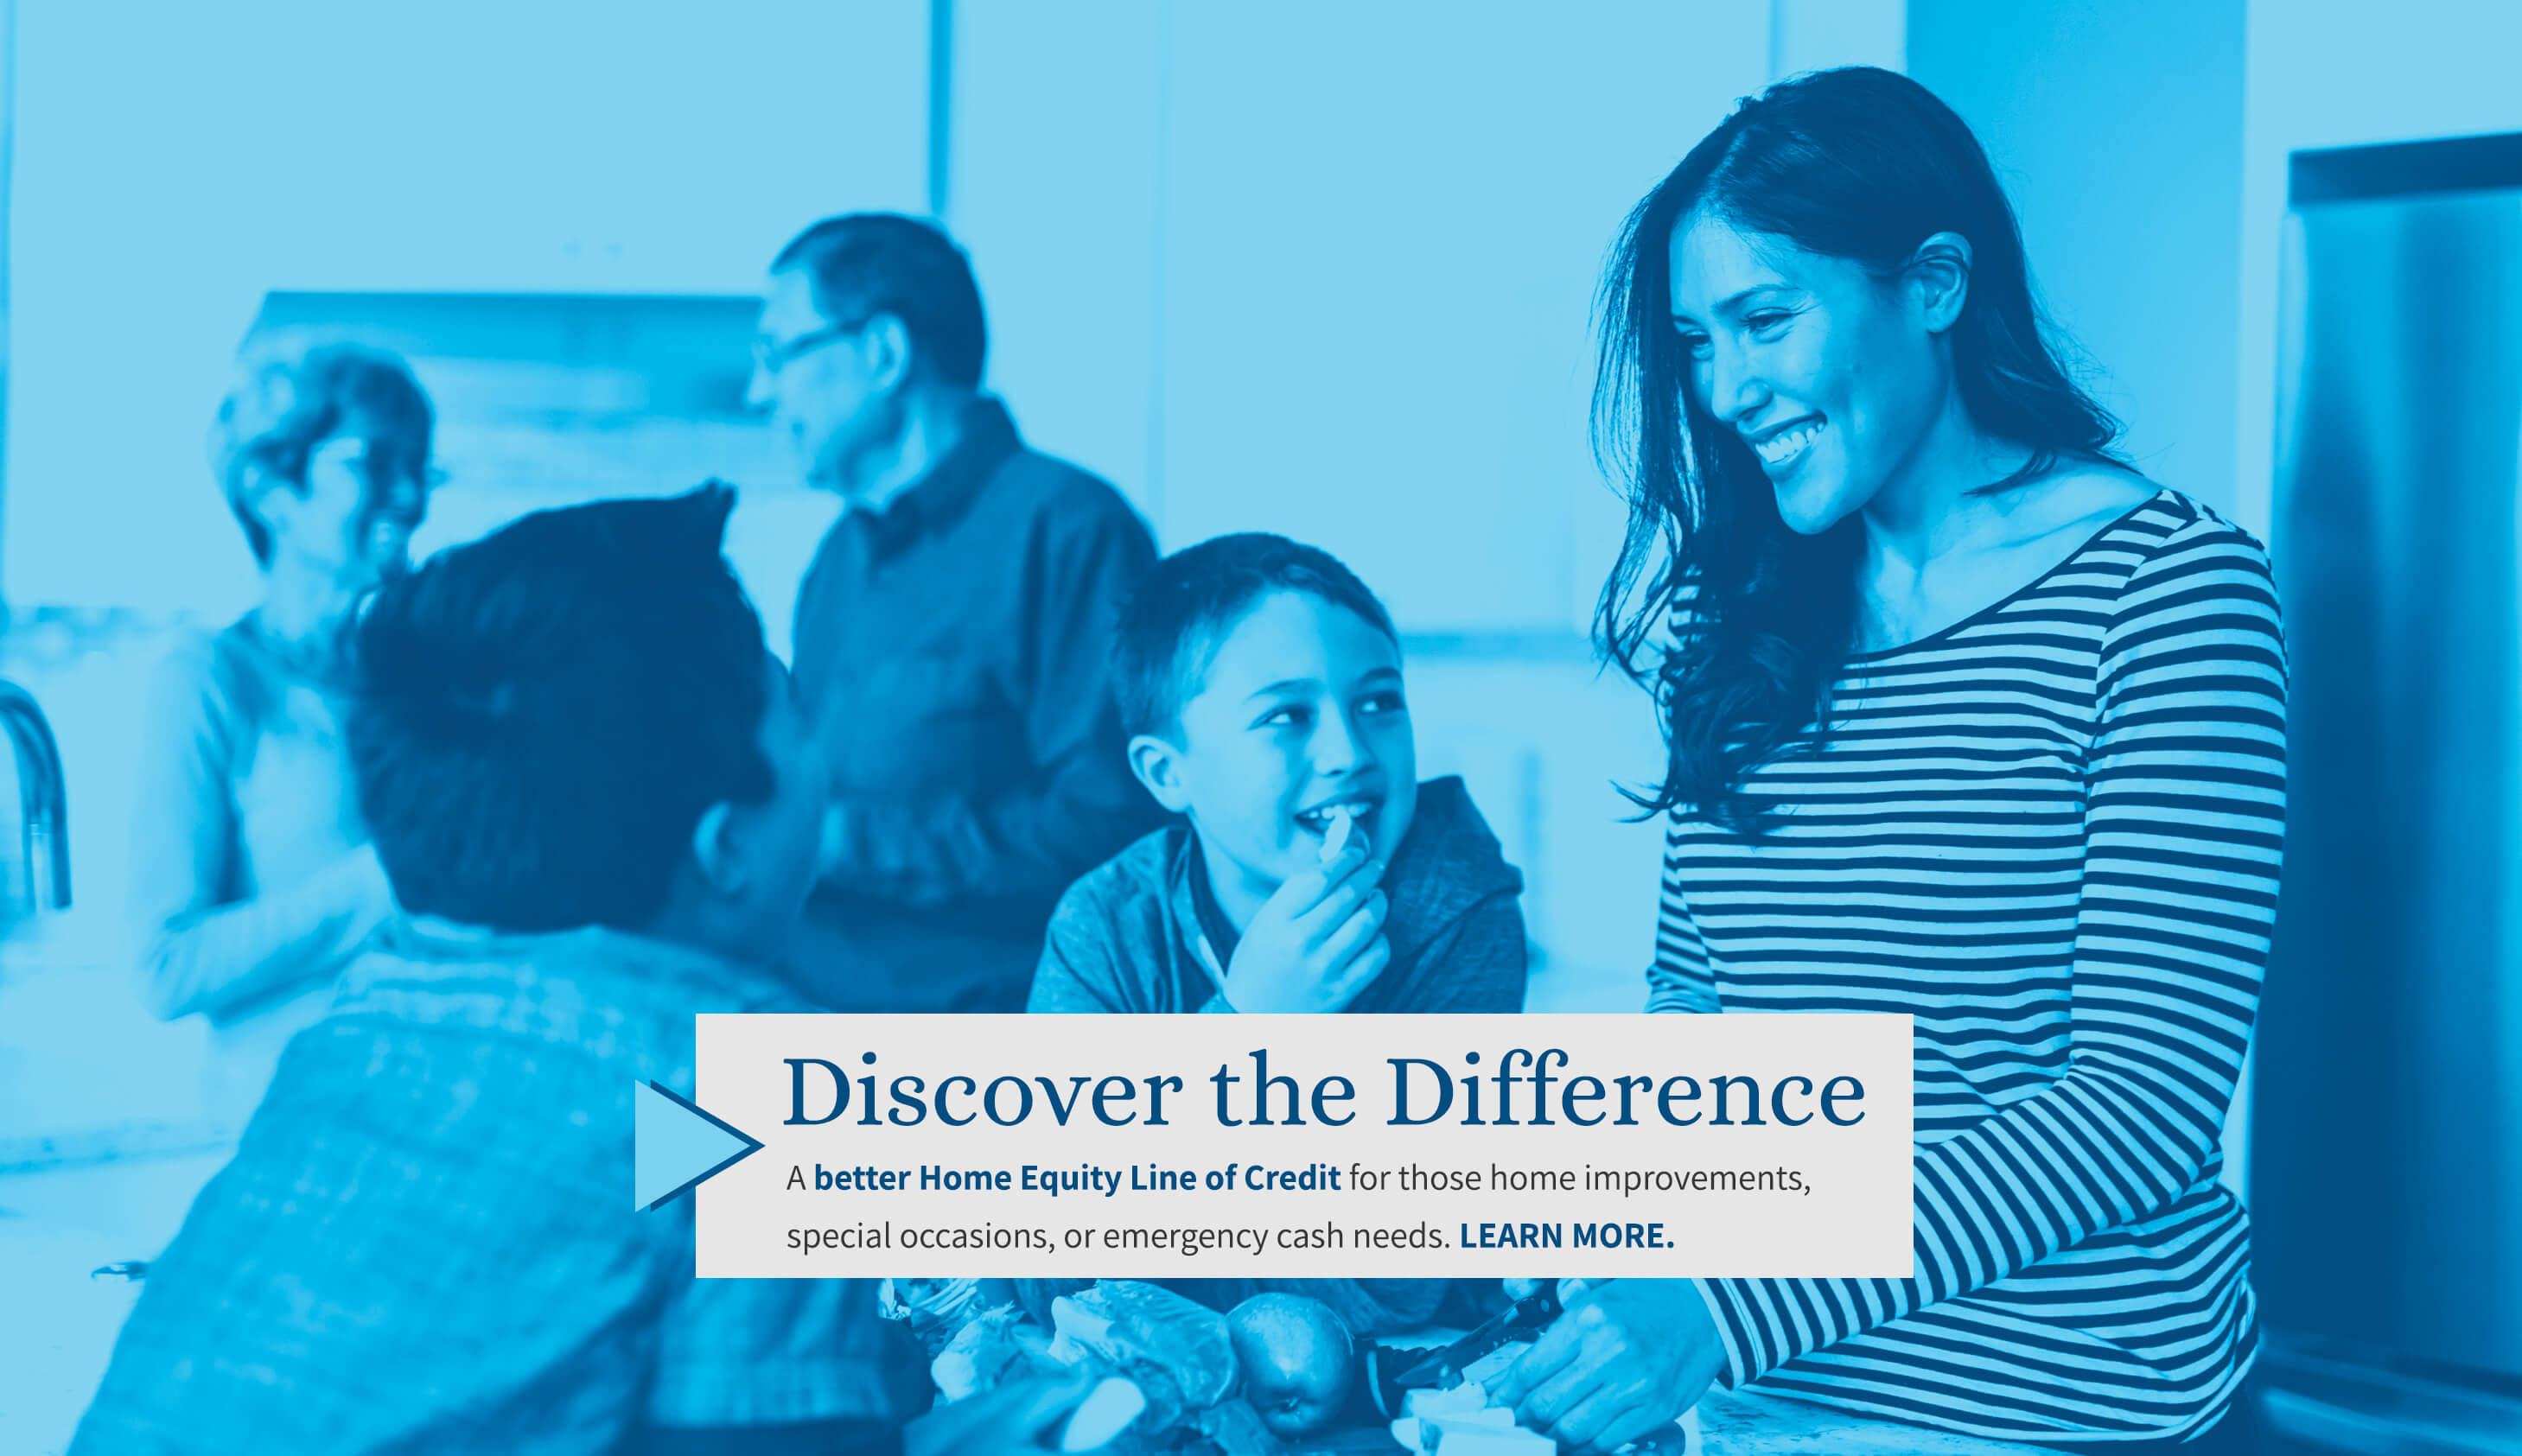 Discover the Difference. A better Home Equity Line-of-Credit for those home improvements, special occasions, or emergency cash needs.